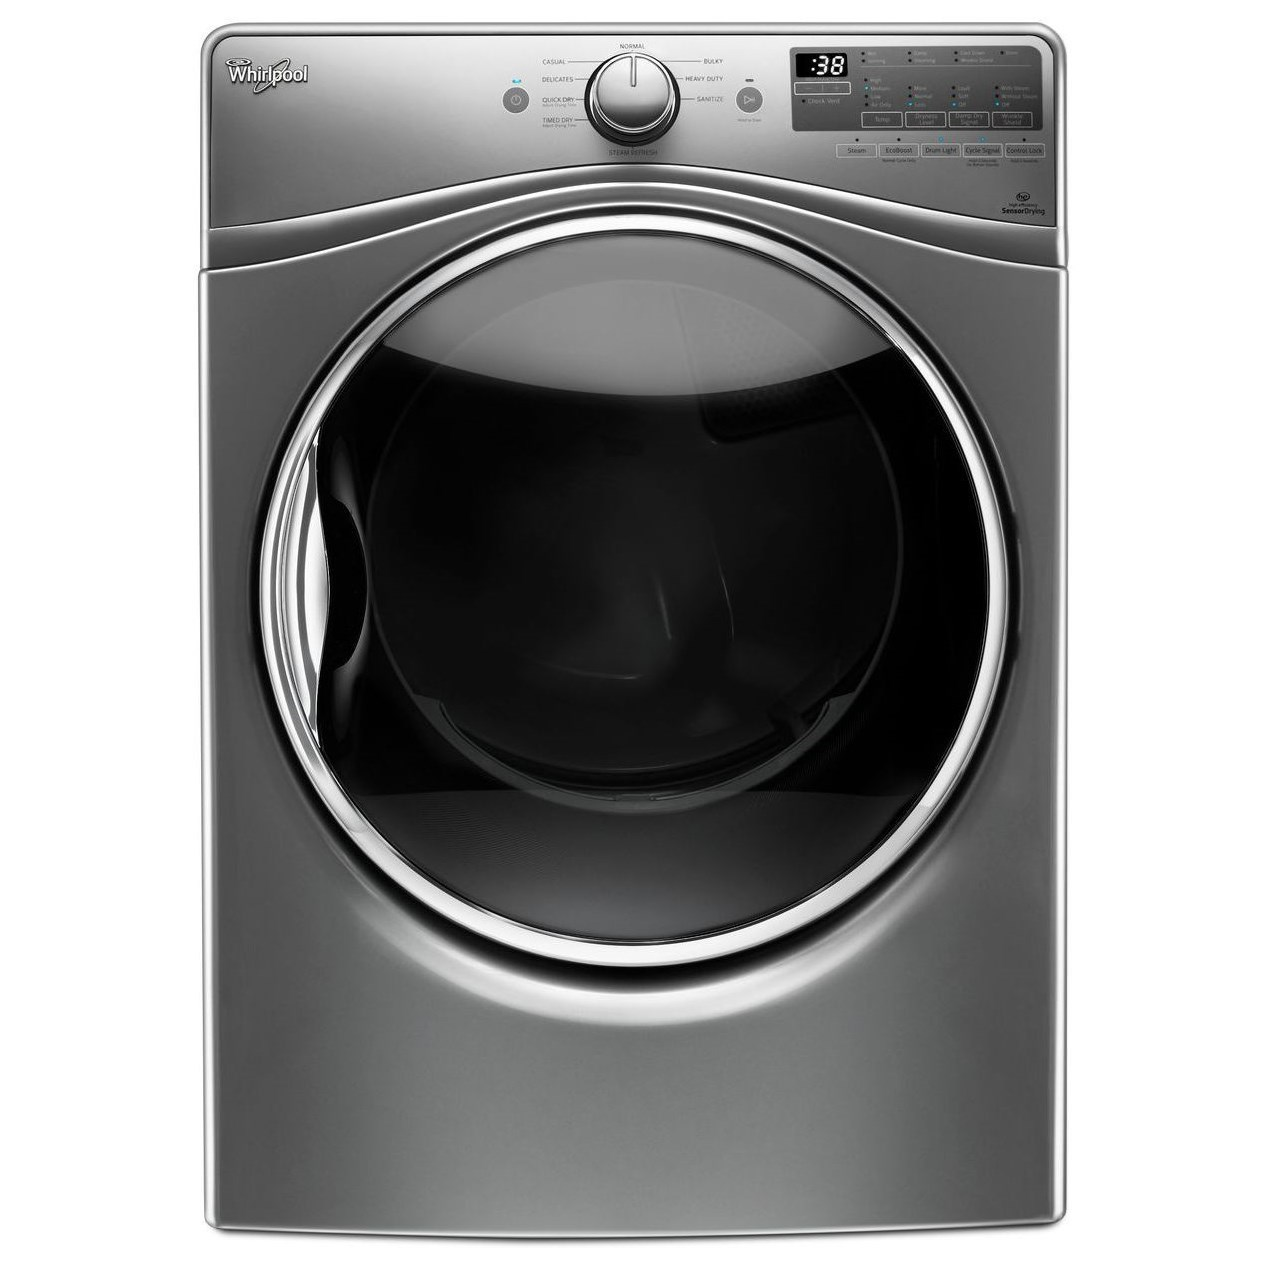 Whirlpool Gas Dryers 7.4 cu. ft. Gas Dryer - Item Number: WGD90HEFC